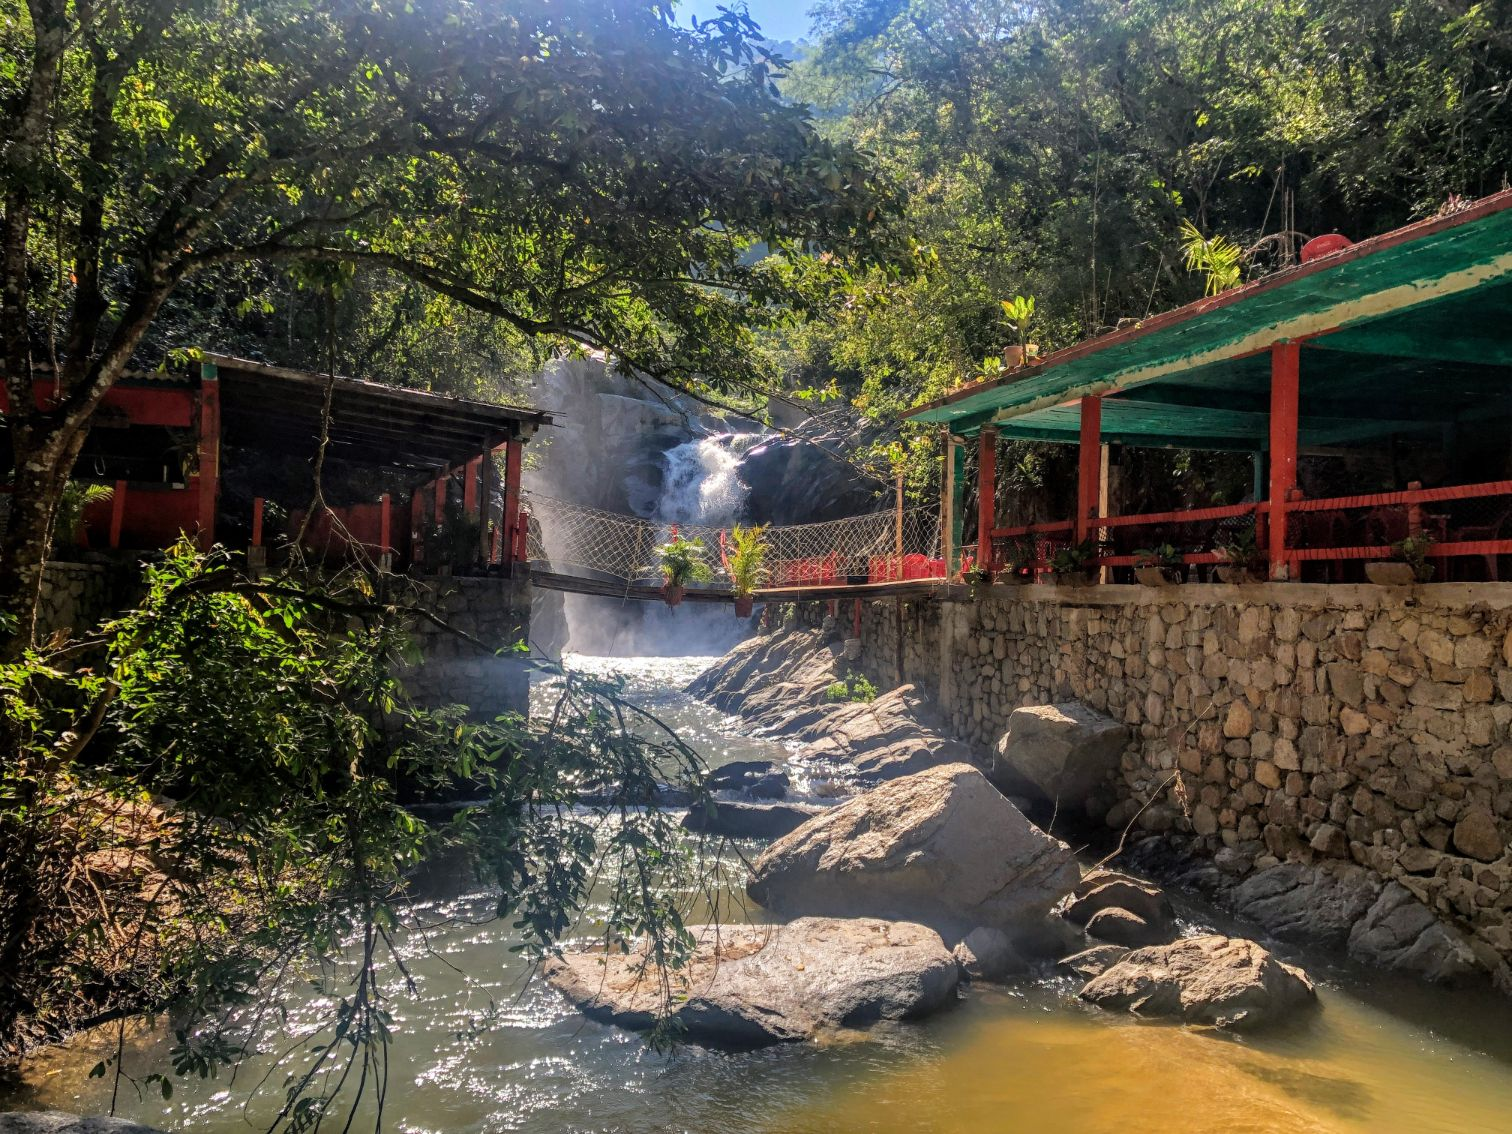 Quimixto waterfall with a red and green restaurant in front of it